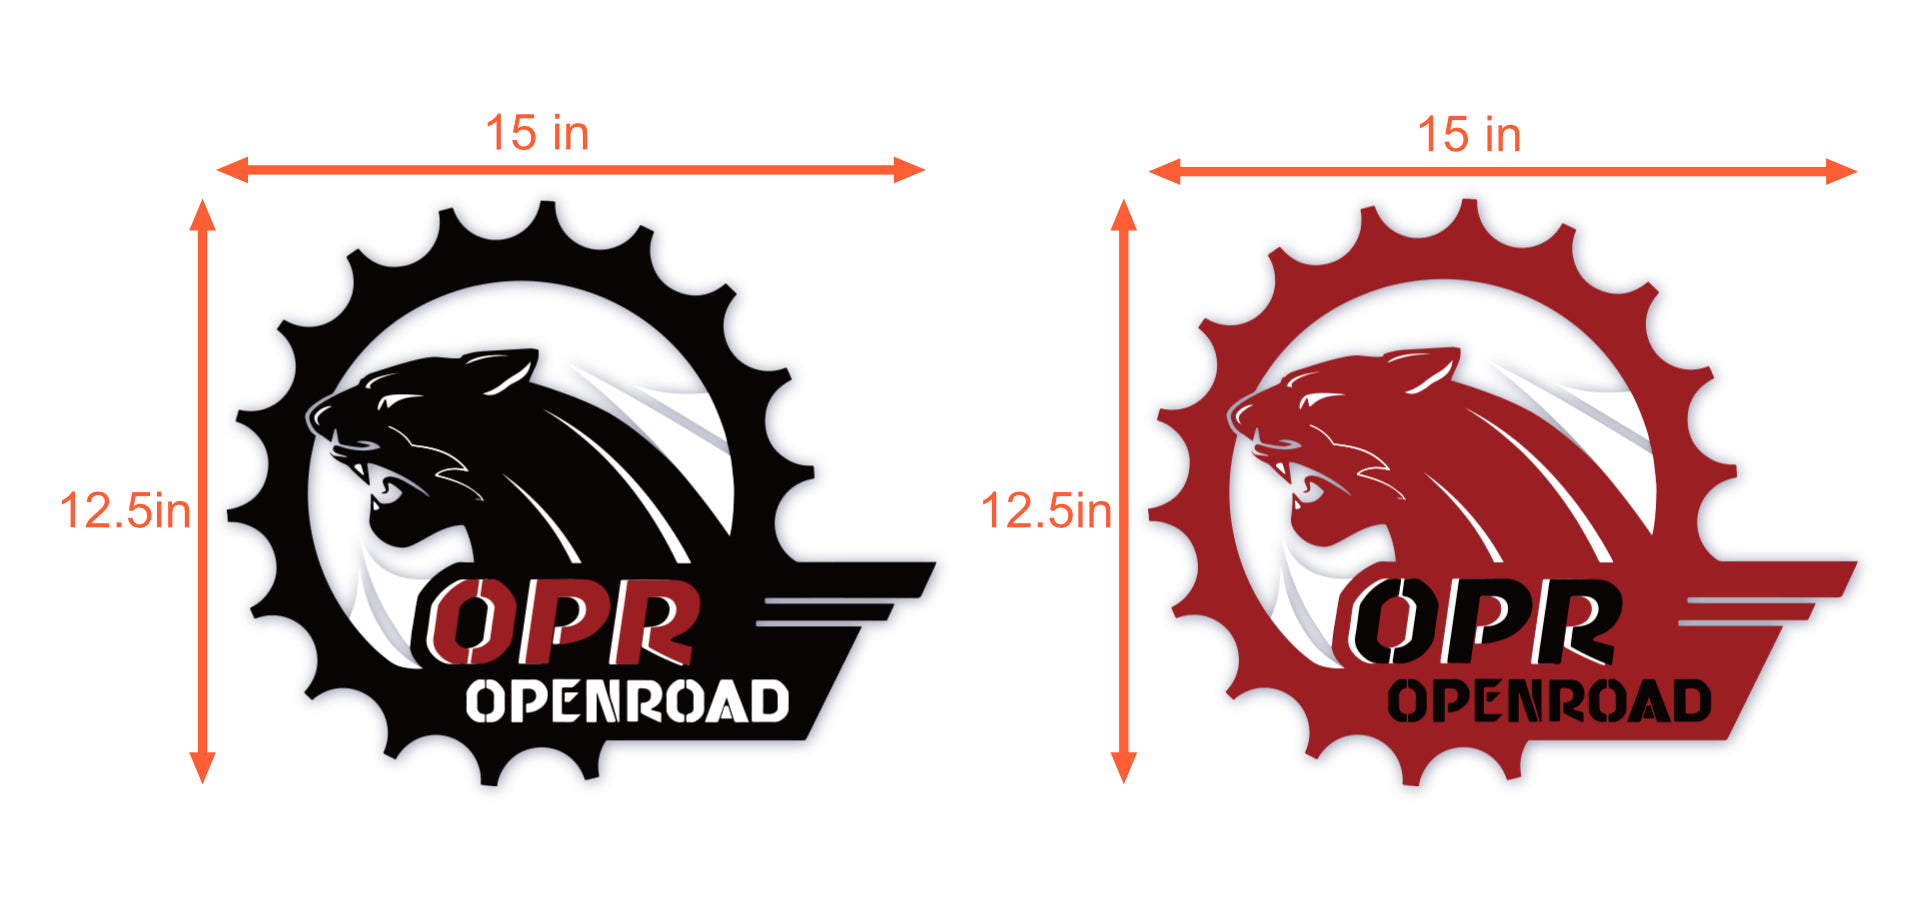 openroad-4wd-decals-size